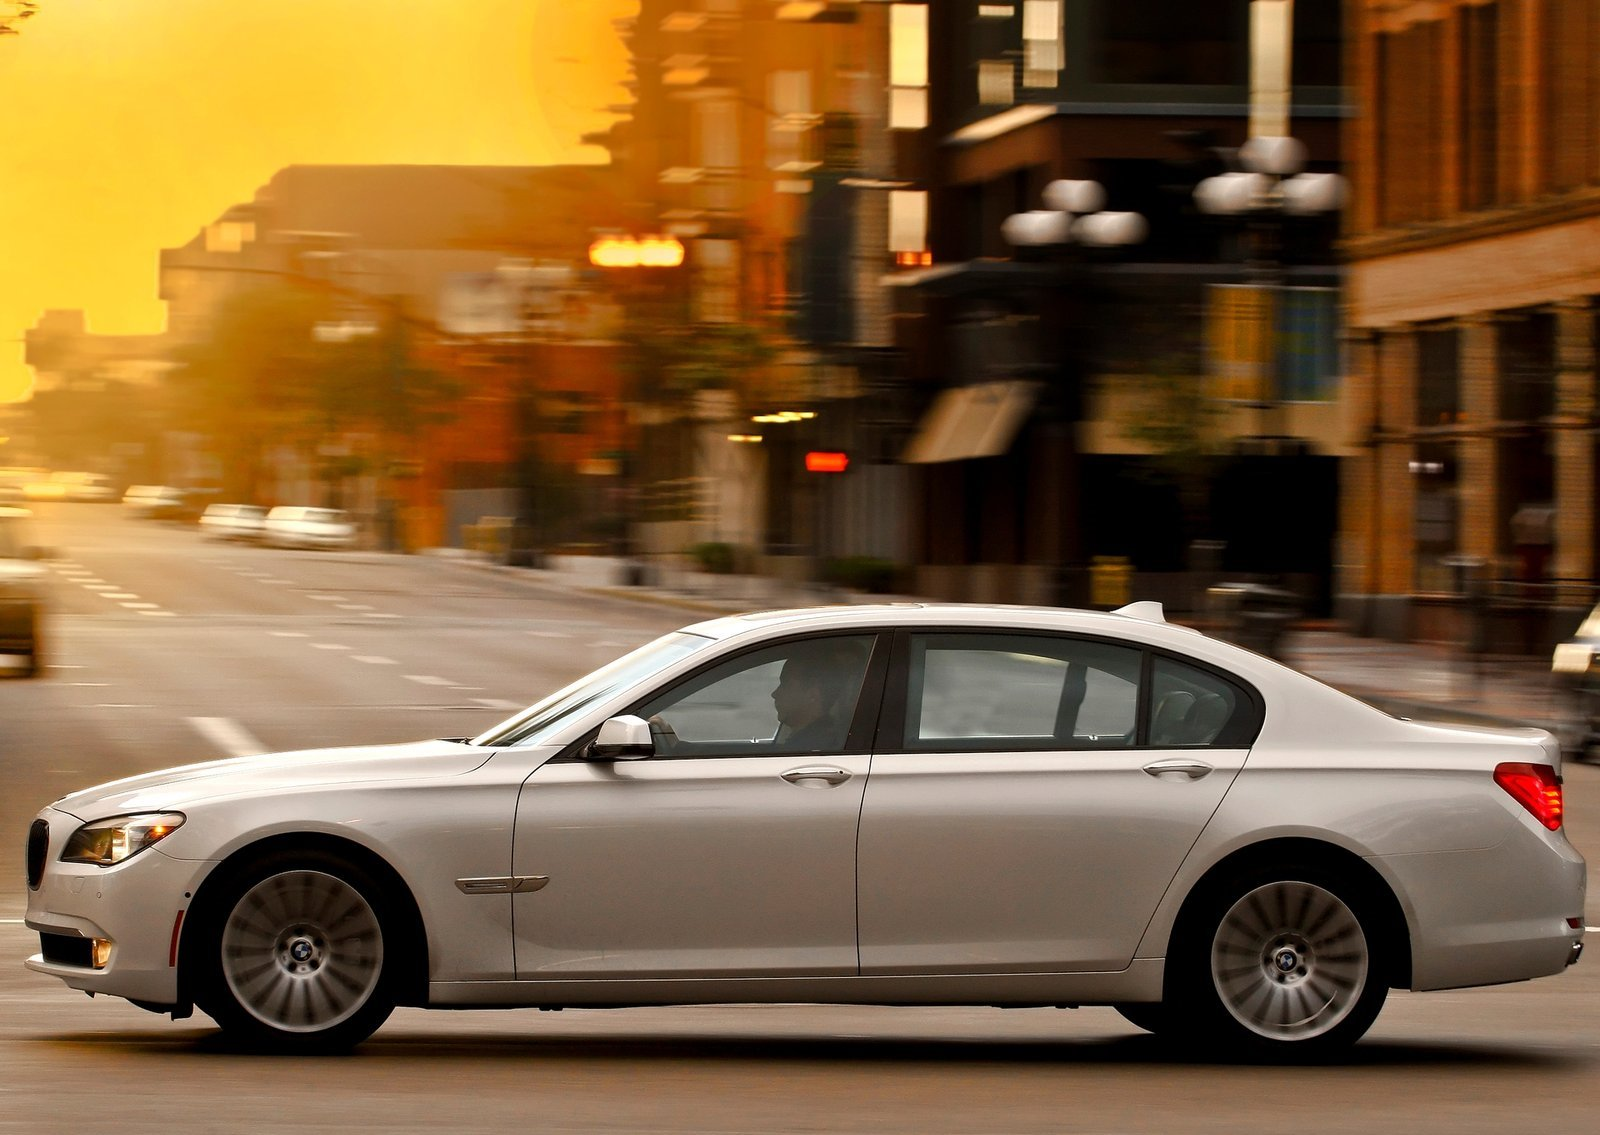 Bmw-7_series_f01_f02_mp2_pic_81189